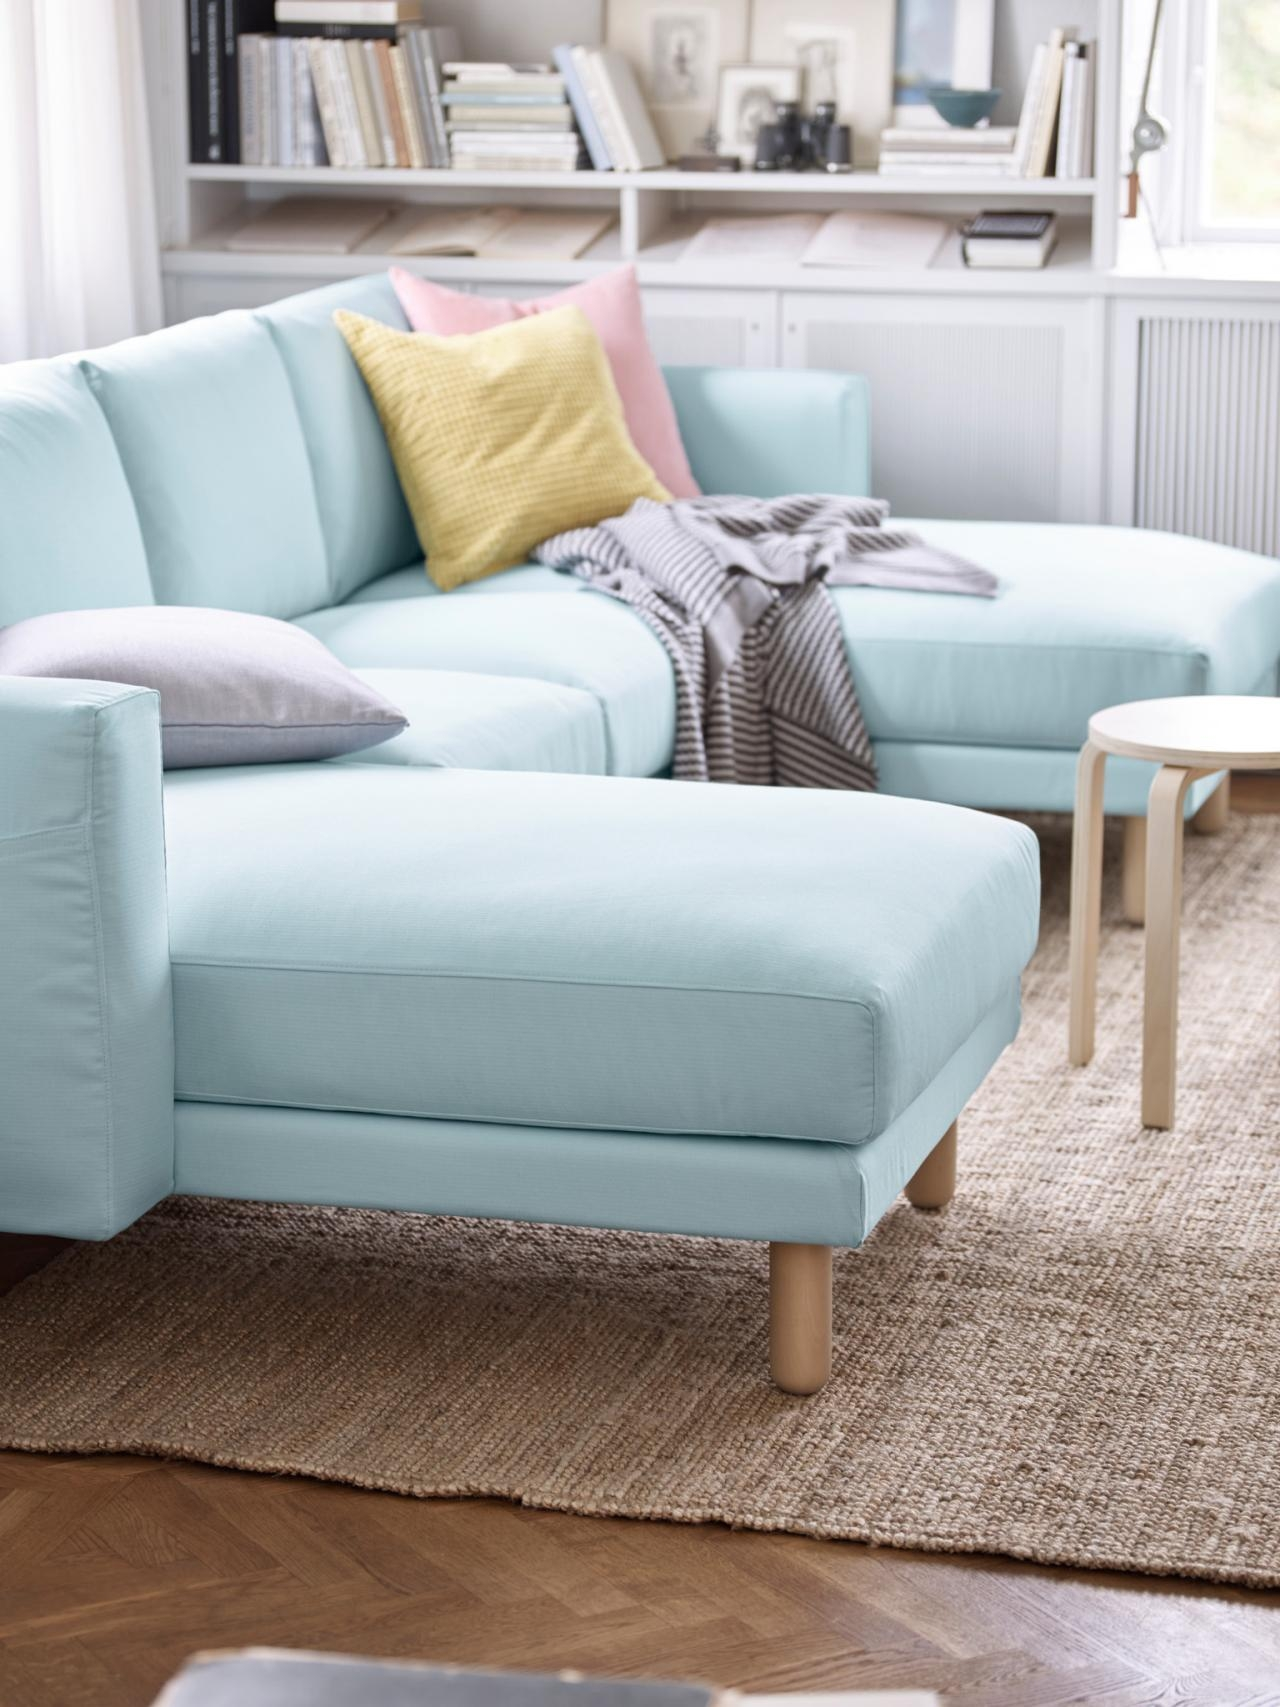 5 Apartment Sized Sofas That Are Lifesavers Hgtvs Decorating Throughout Apartment Sofa Sectional (Image 1 of 15)